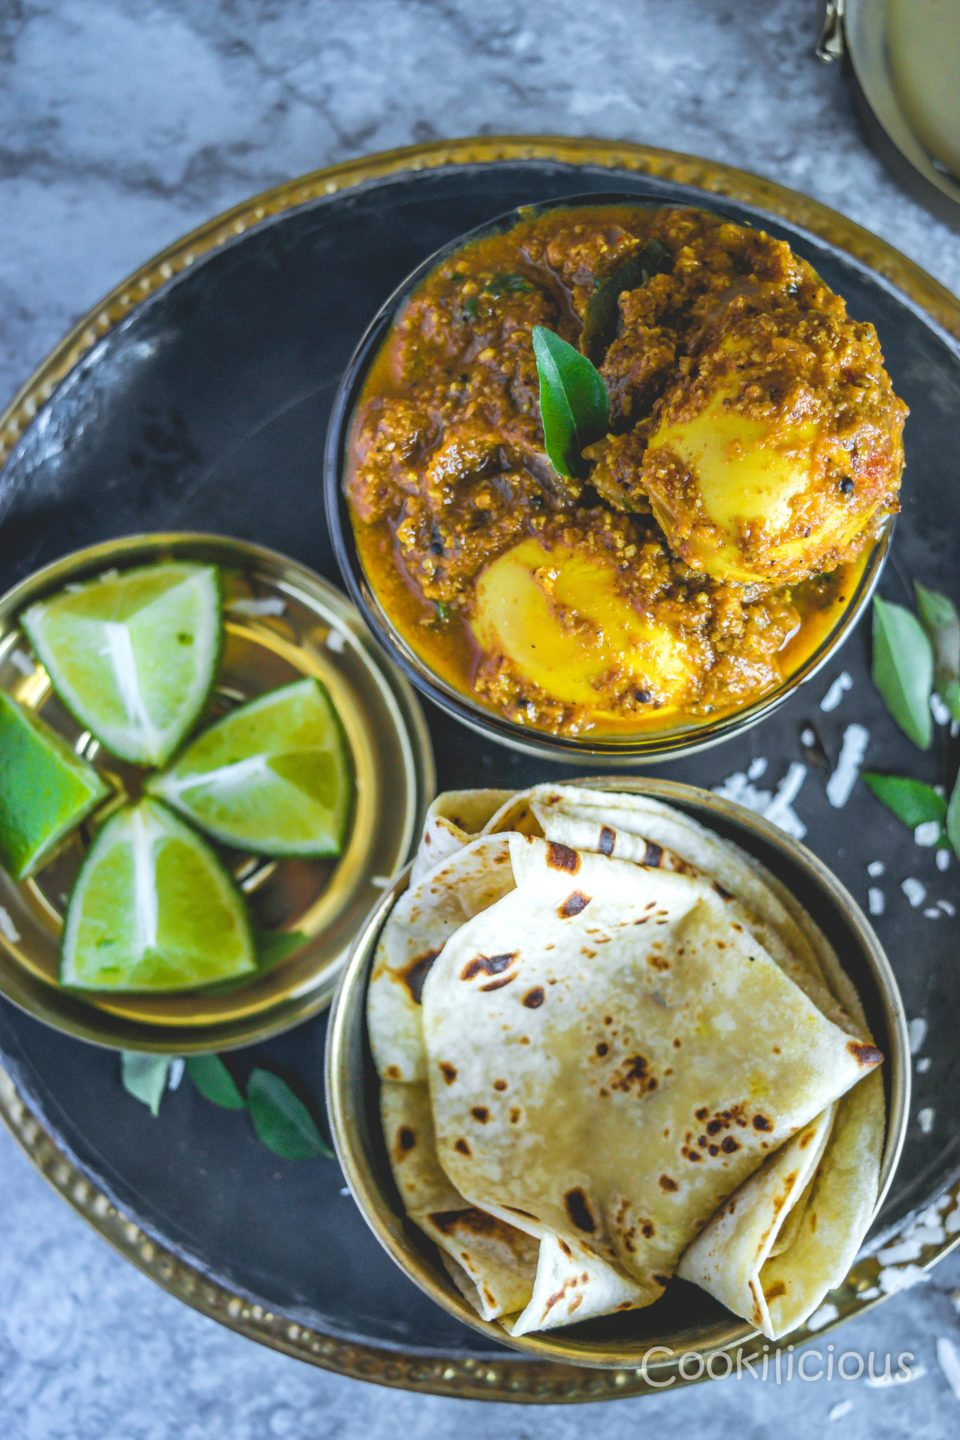 Flat lay shot of Spicy Chettinad Style Egg Roast Curry on a plate served with phulka and lemon wedges